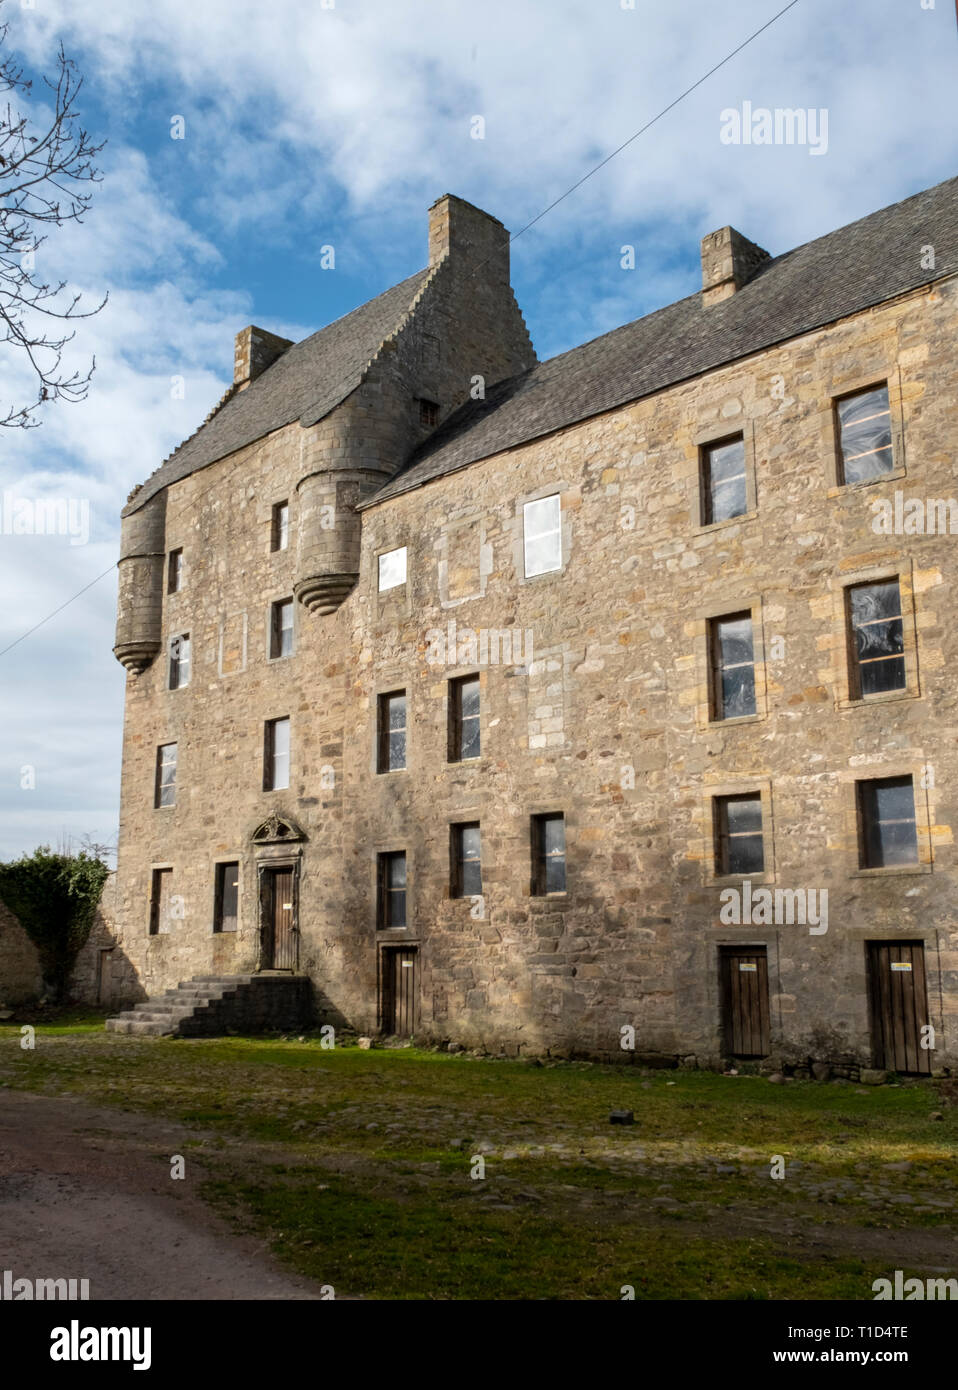 Midhope castle, Abercorn, Hopetoun estate, South Queensferry. The castle is known fictionally as 'Lallybroch', in the Outlander tv series. - Stock Image